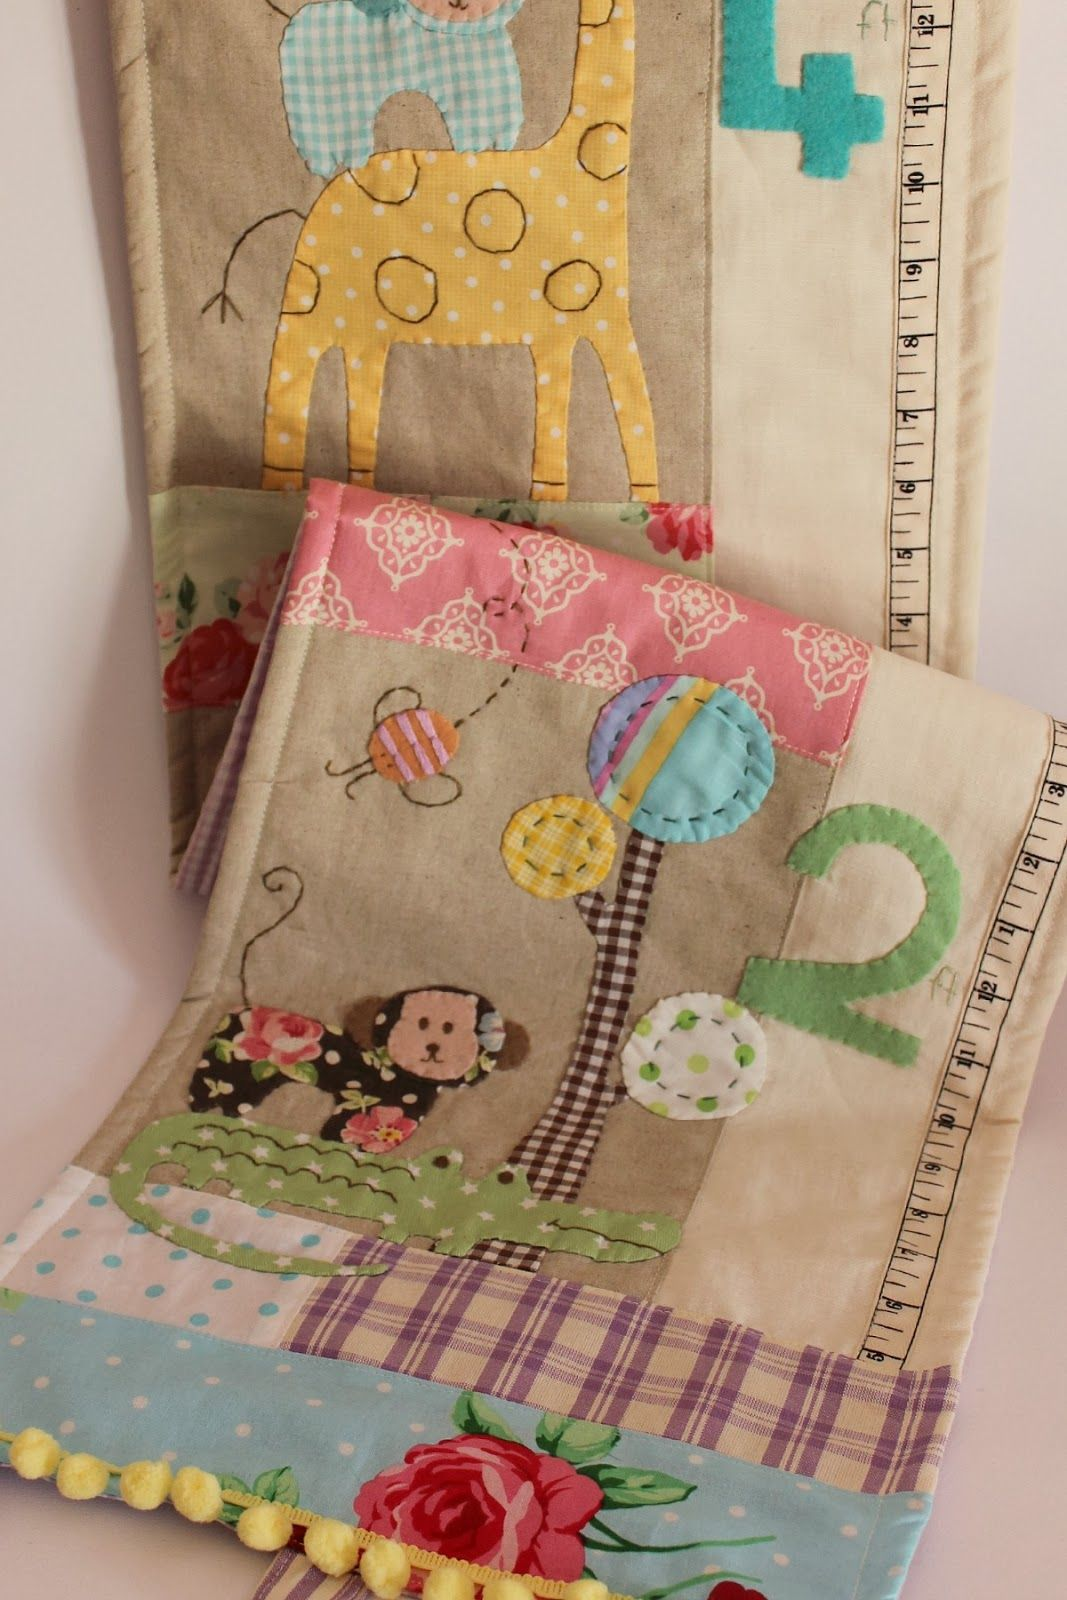 Roxy creations growth charts creative ideas pinterest growth roxy creations growth charts geenschuldenfo Images